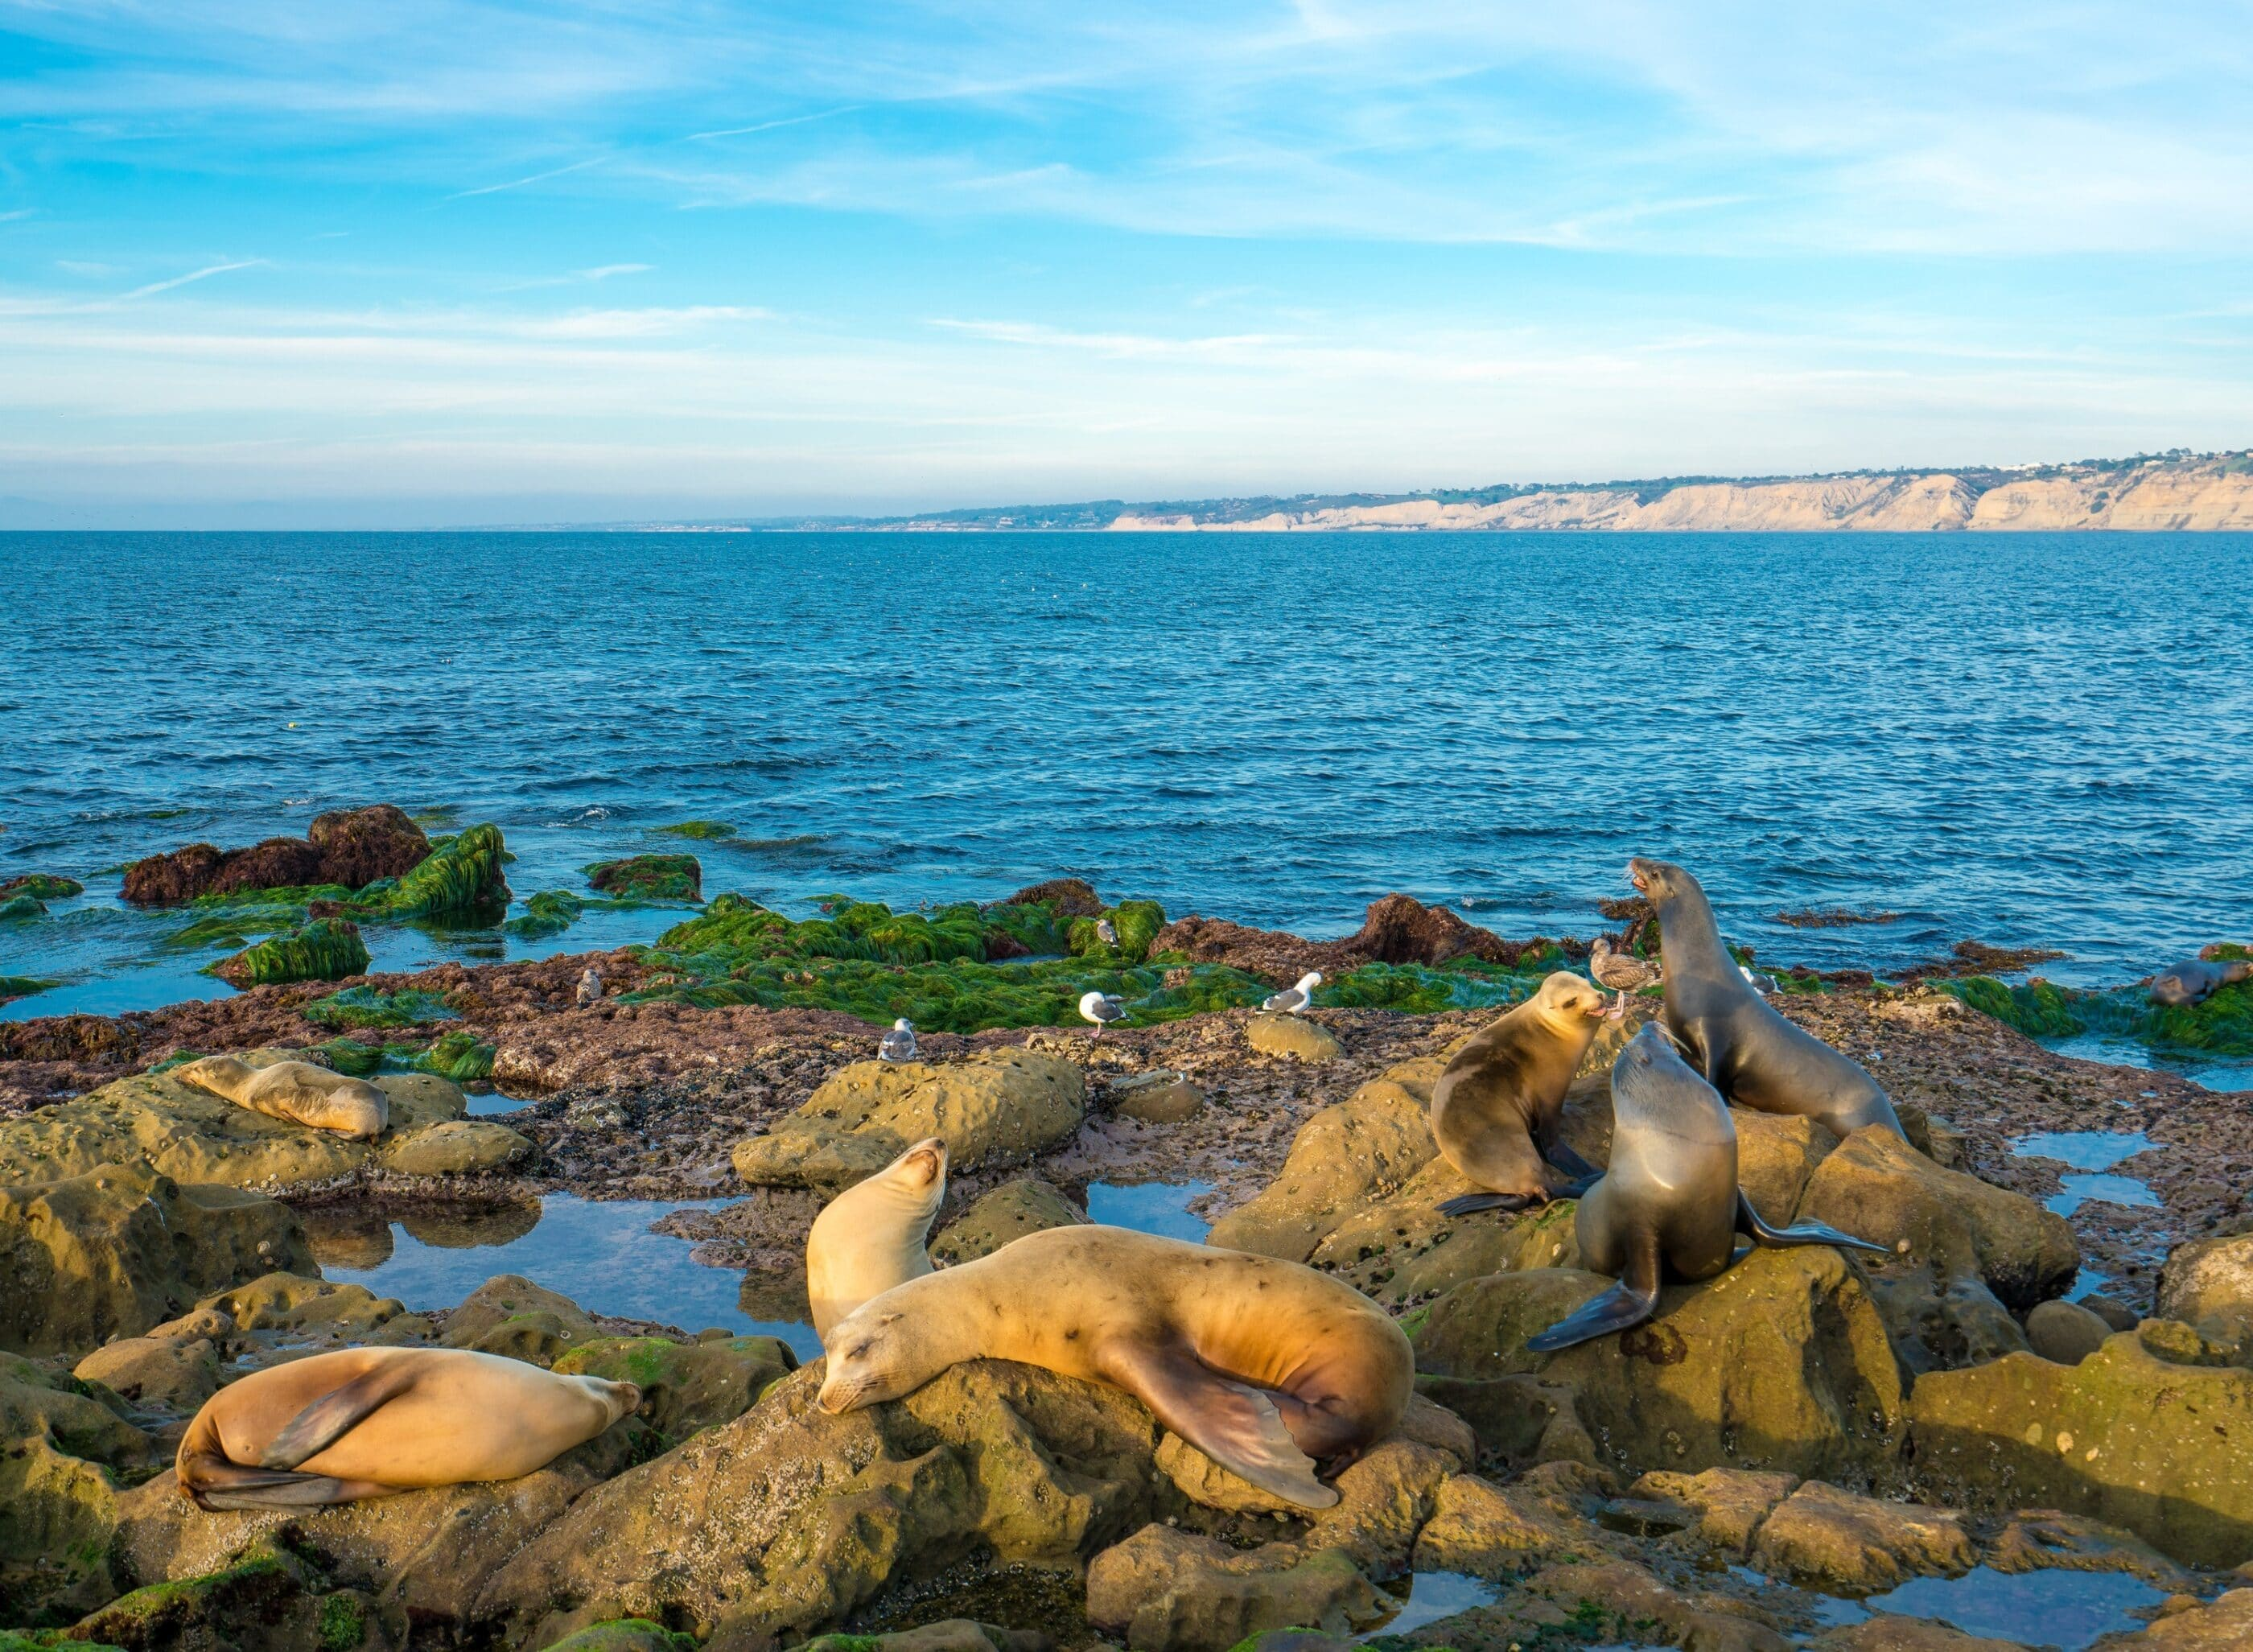 Sea lions hanging out at La Jolla Cove as shot with a SONY a7r ii mirrorless camera.